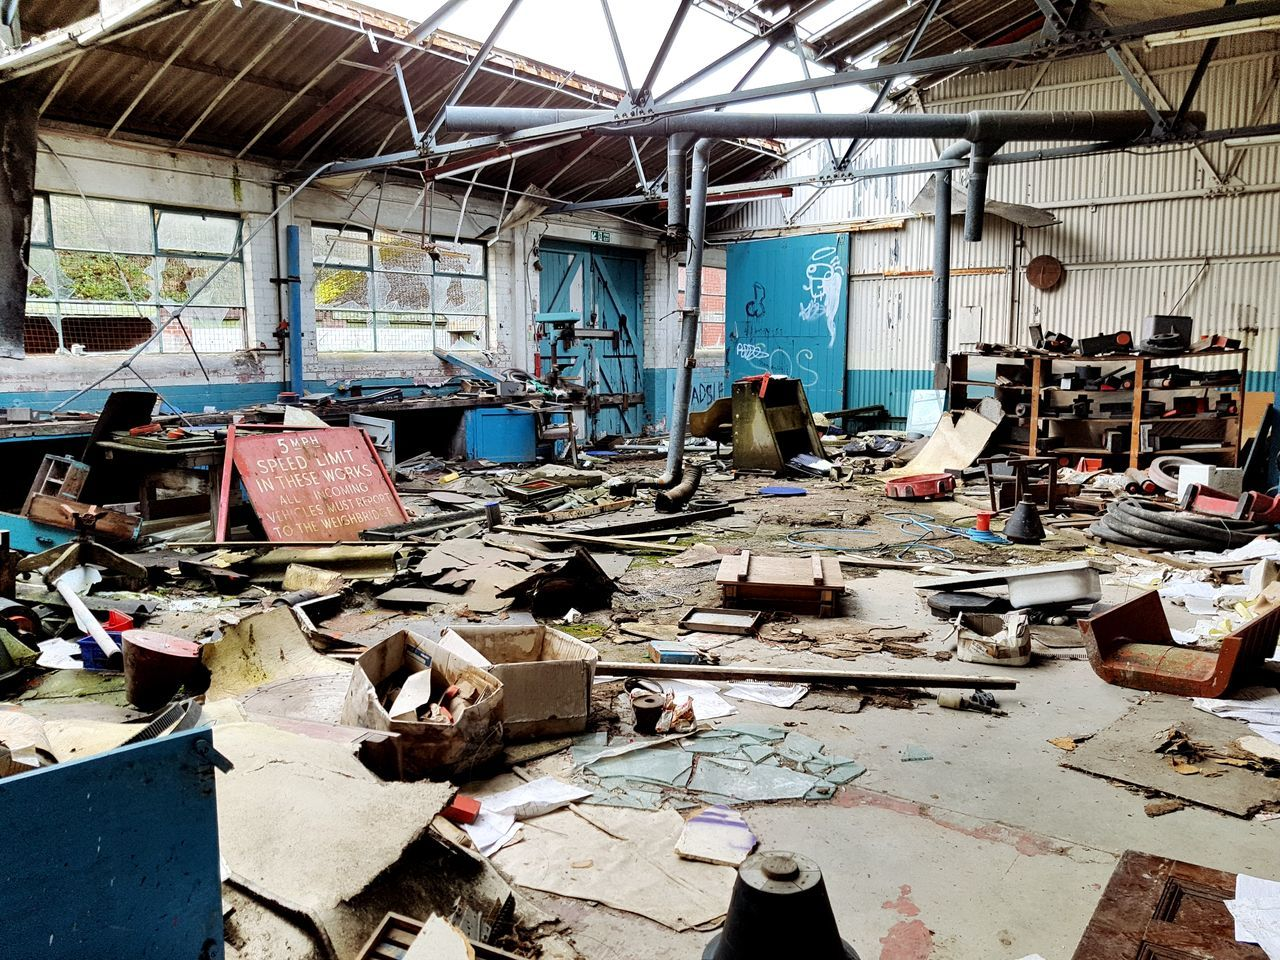 Industry Indoors  Warehouse Factory No People Architecture Occupation Day Old Buildings Factory Building 1900's Buildings Abandoned Buildings Worn Out Abandoned Places Destruction Derelictplaces Bad Condition Ruined Abandoned Damaged